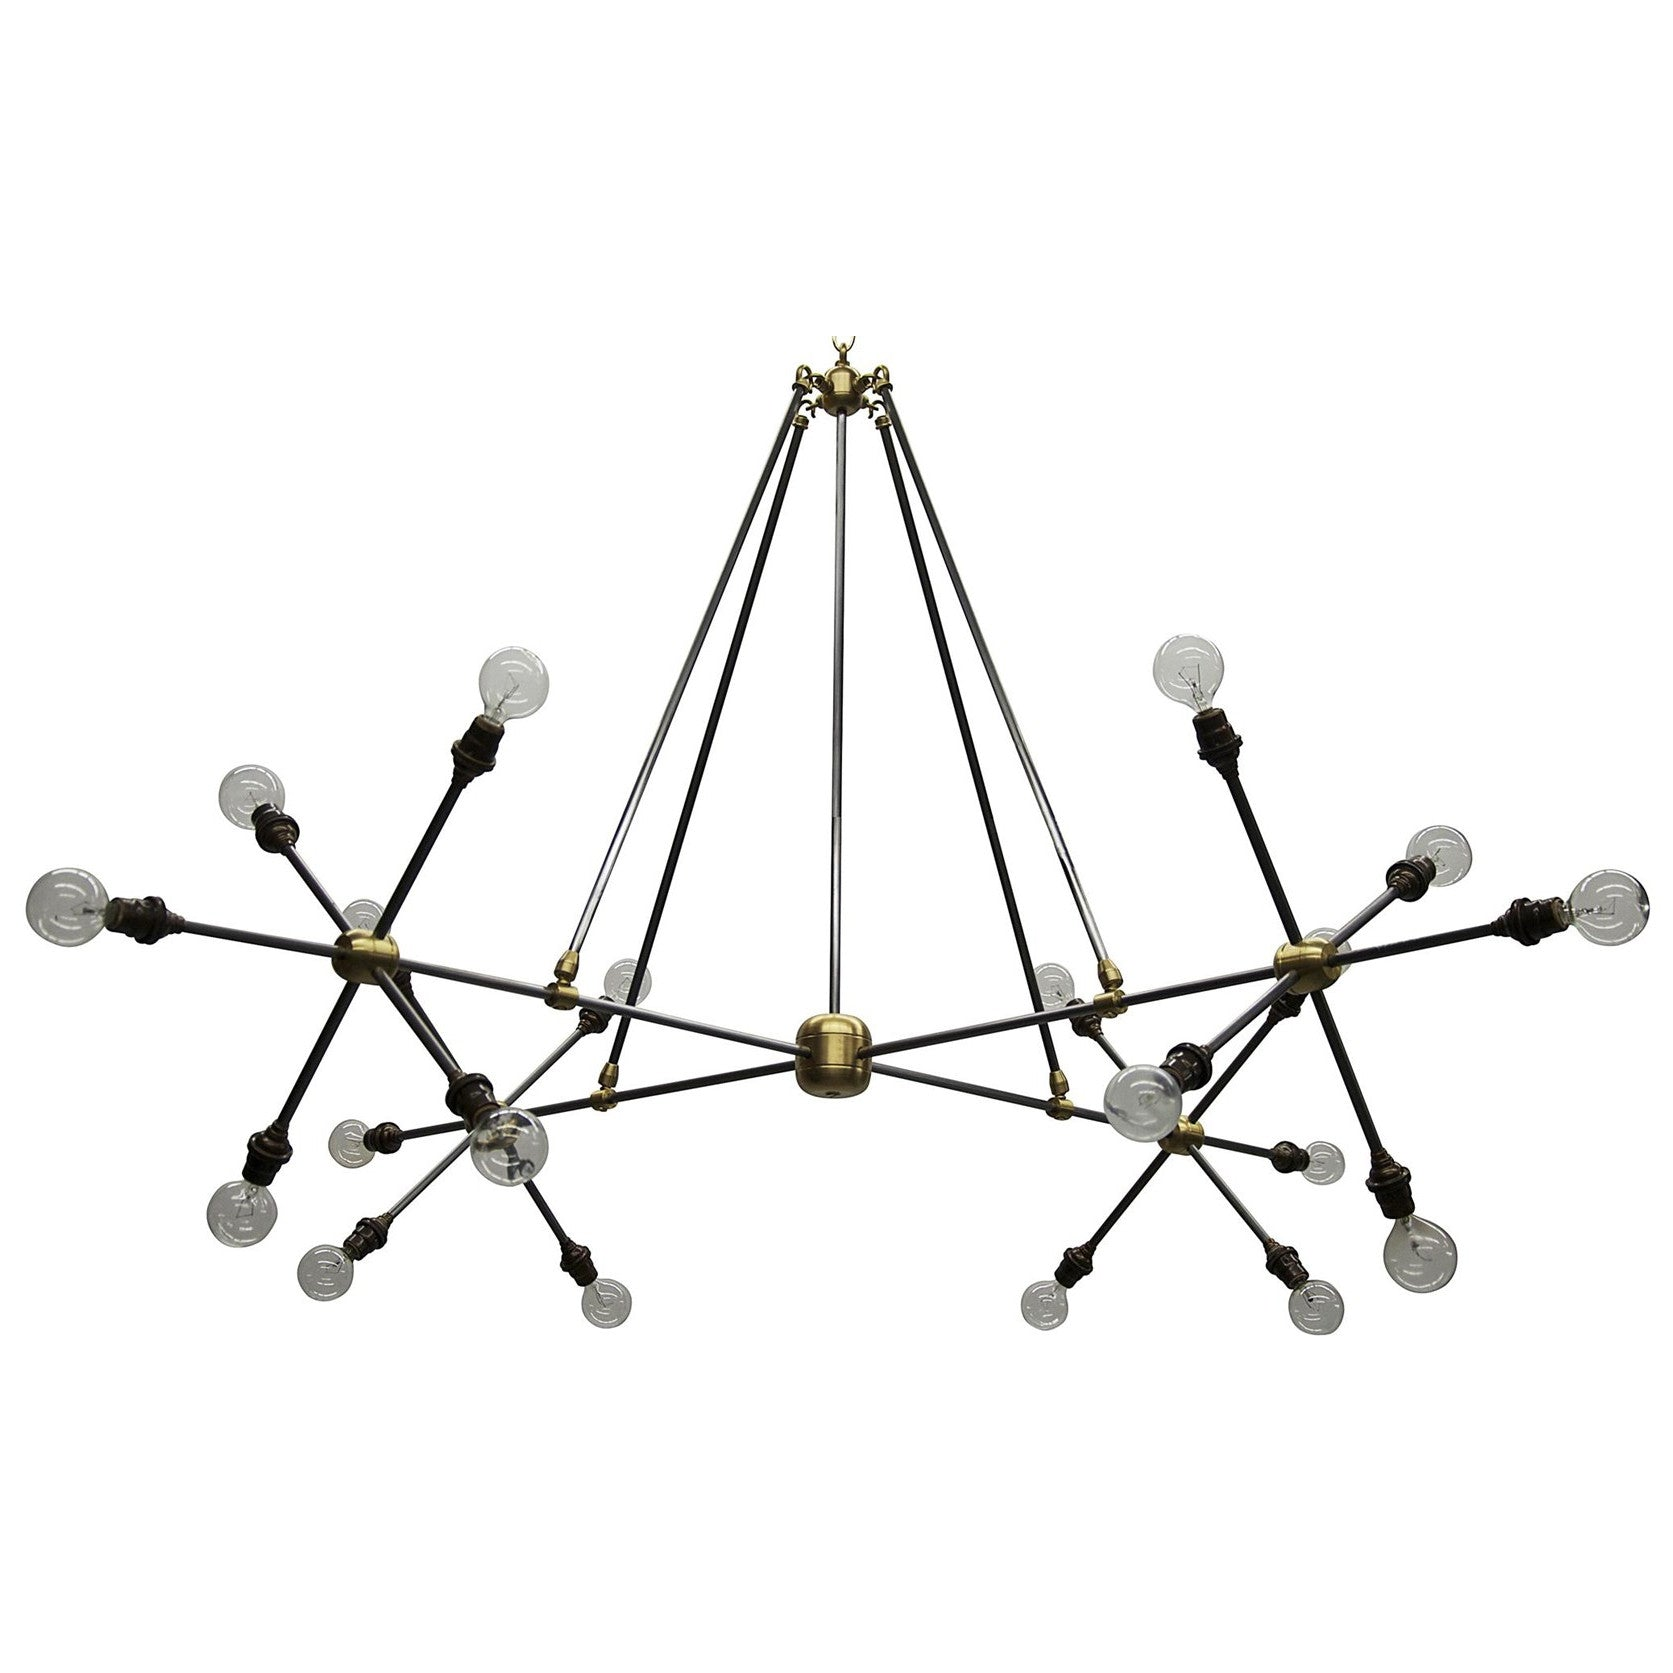 Mobile Rods Chandelier